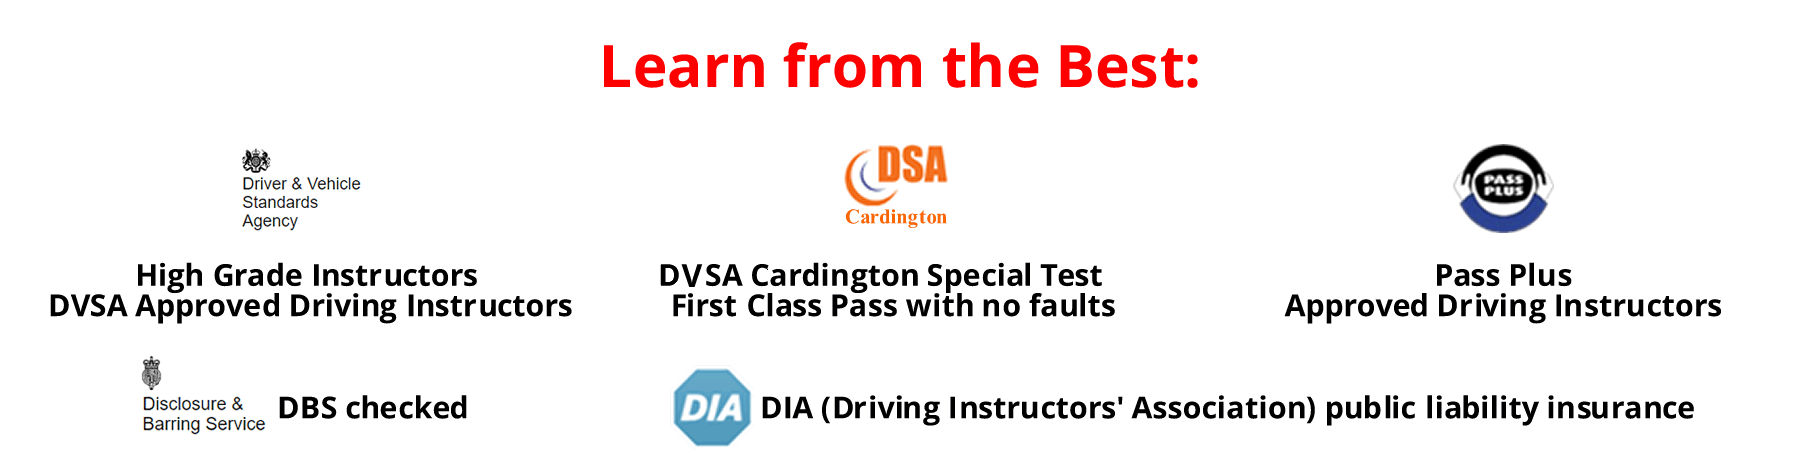 High grade DVSA Approved Driving Instructors, Pass Plus approved and DBS checked with DIA public liability insurance; Bob Seys, the owner, has also achieved a First Class Pass on the DVSA Cardington Special Test with no faults.